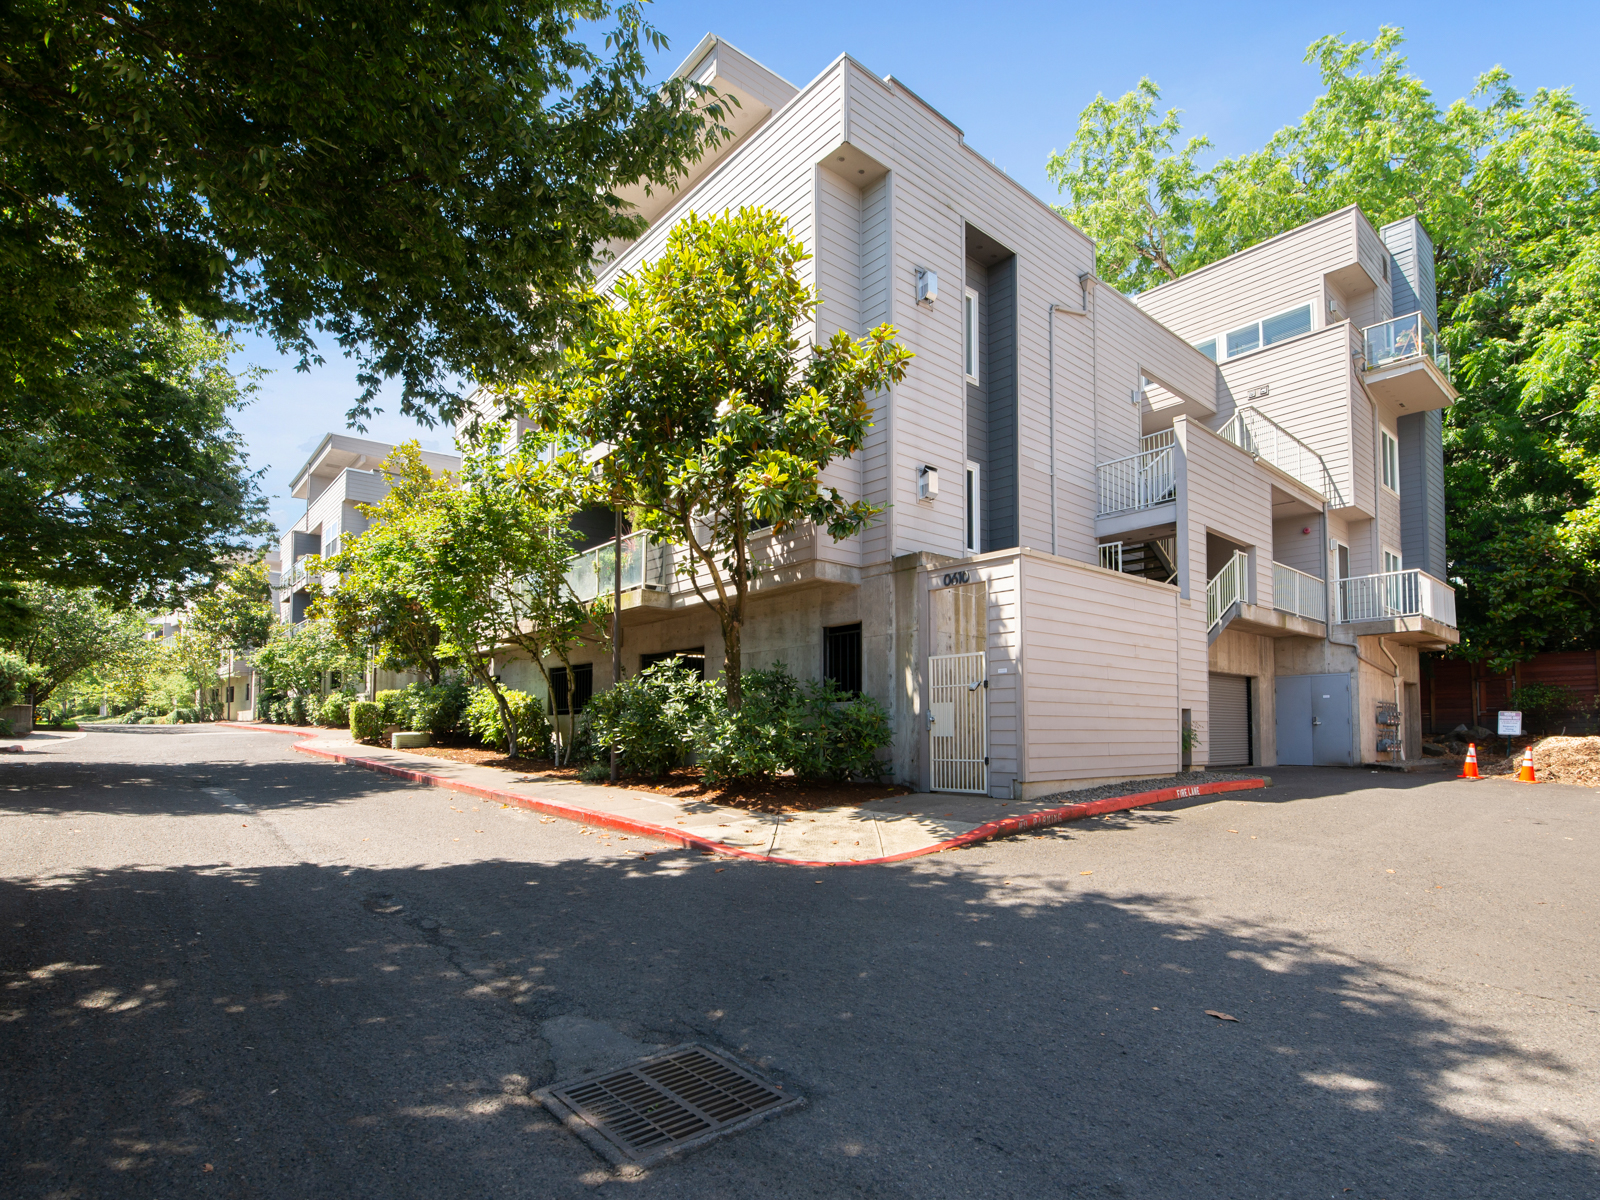 610 sw nevada st (1 of 36)